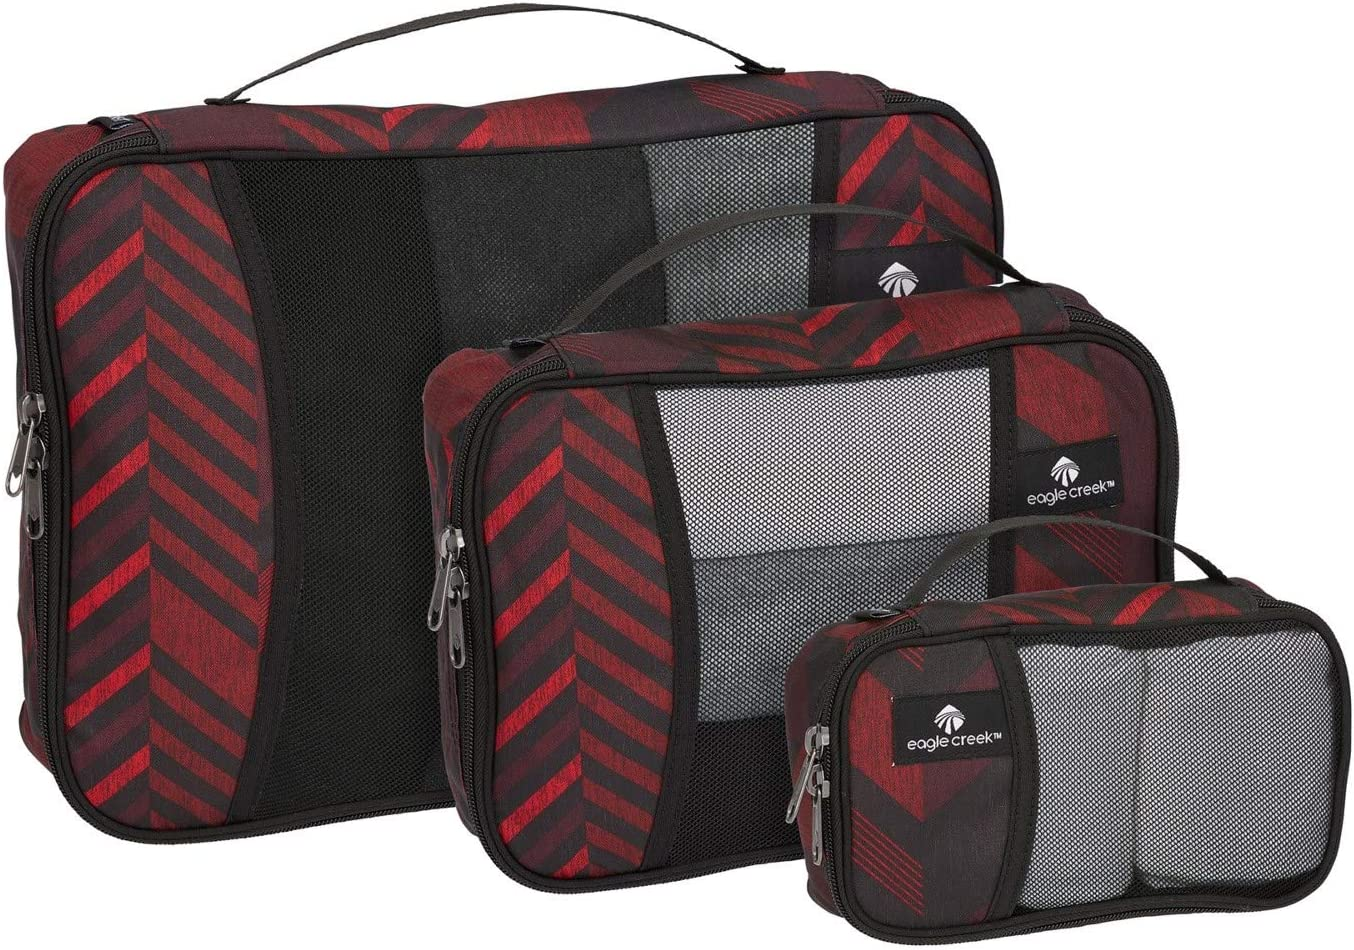 Eagle Creek Travel Gear Luggage Pack-it Cube Set Red Stripe